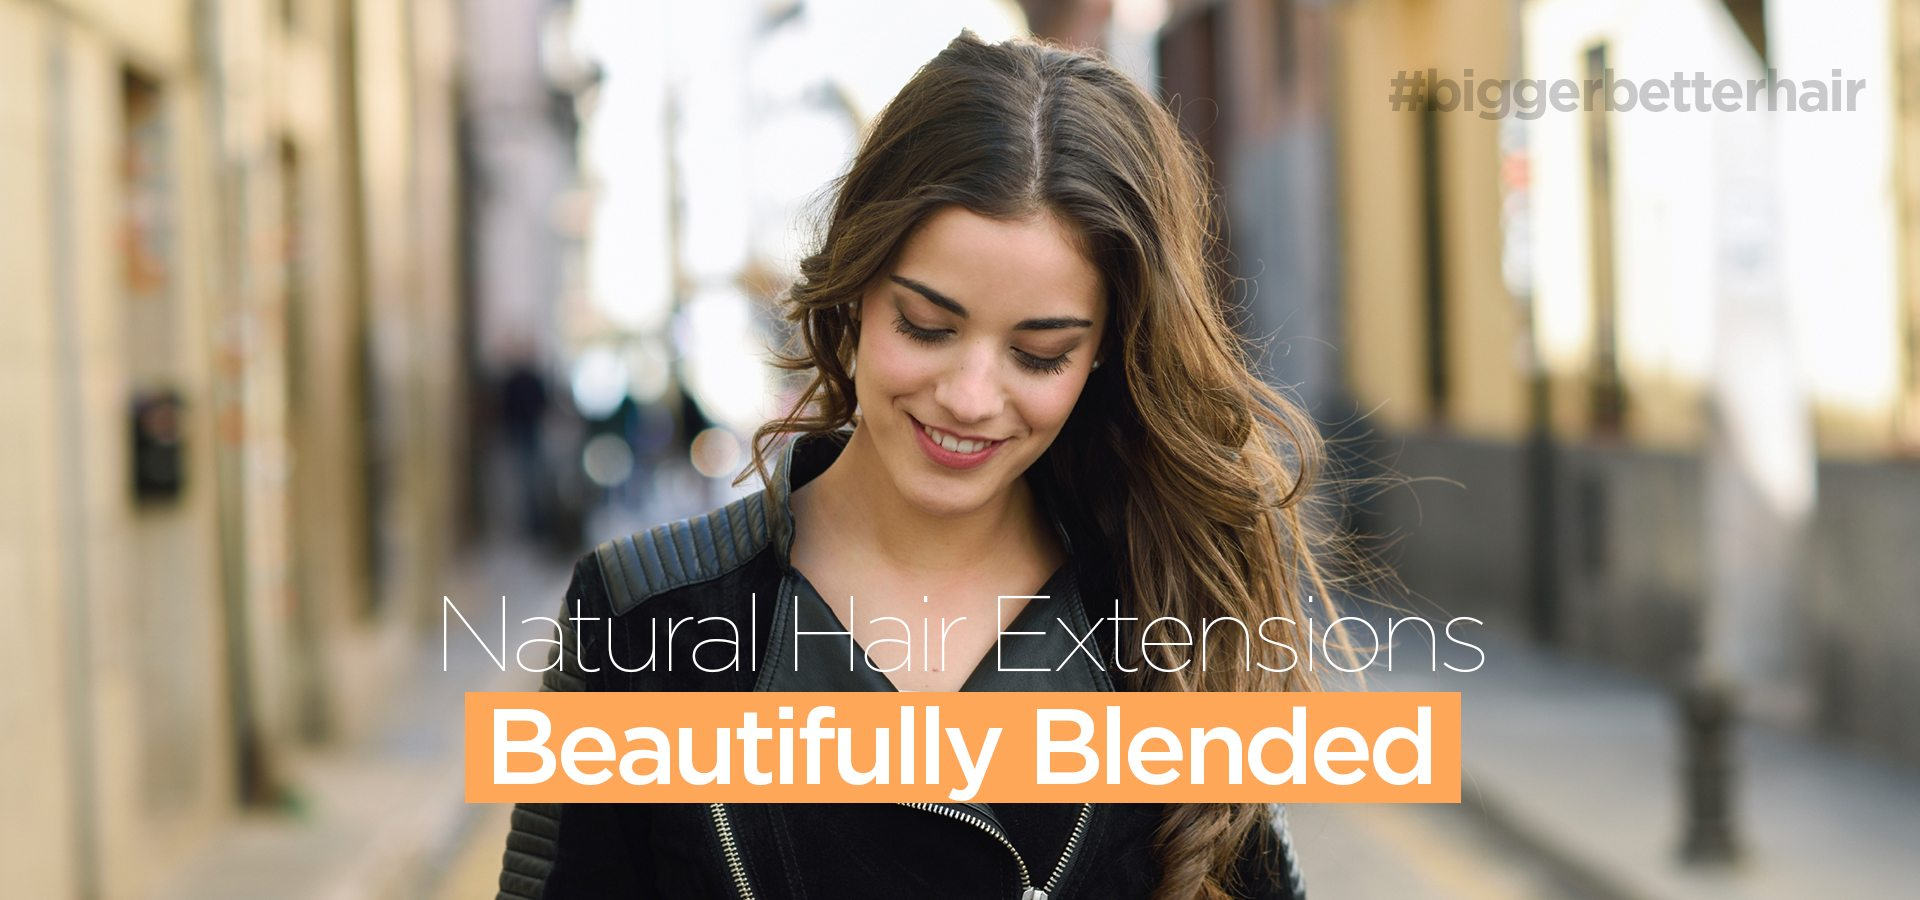 Line-1-Natural-Hair-Extensions-Line-2-Beautifully-Blended